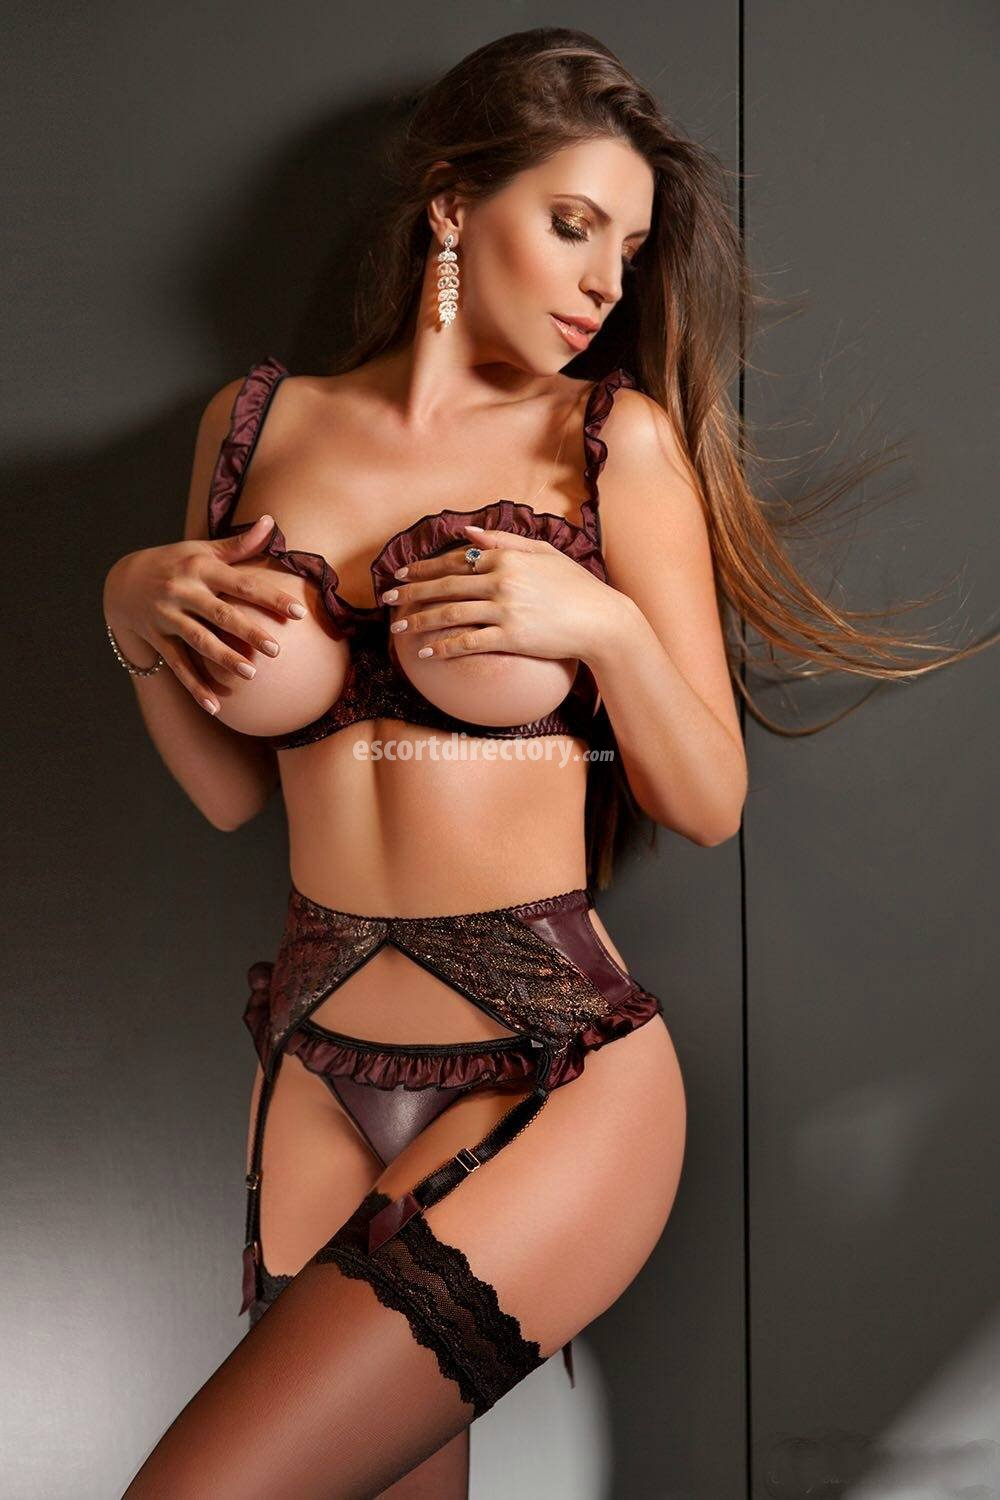 female escorts for couples escorts classifieds New South Wales